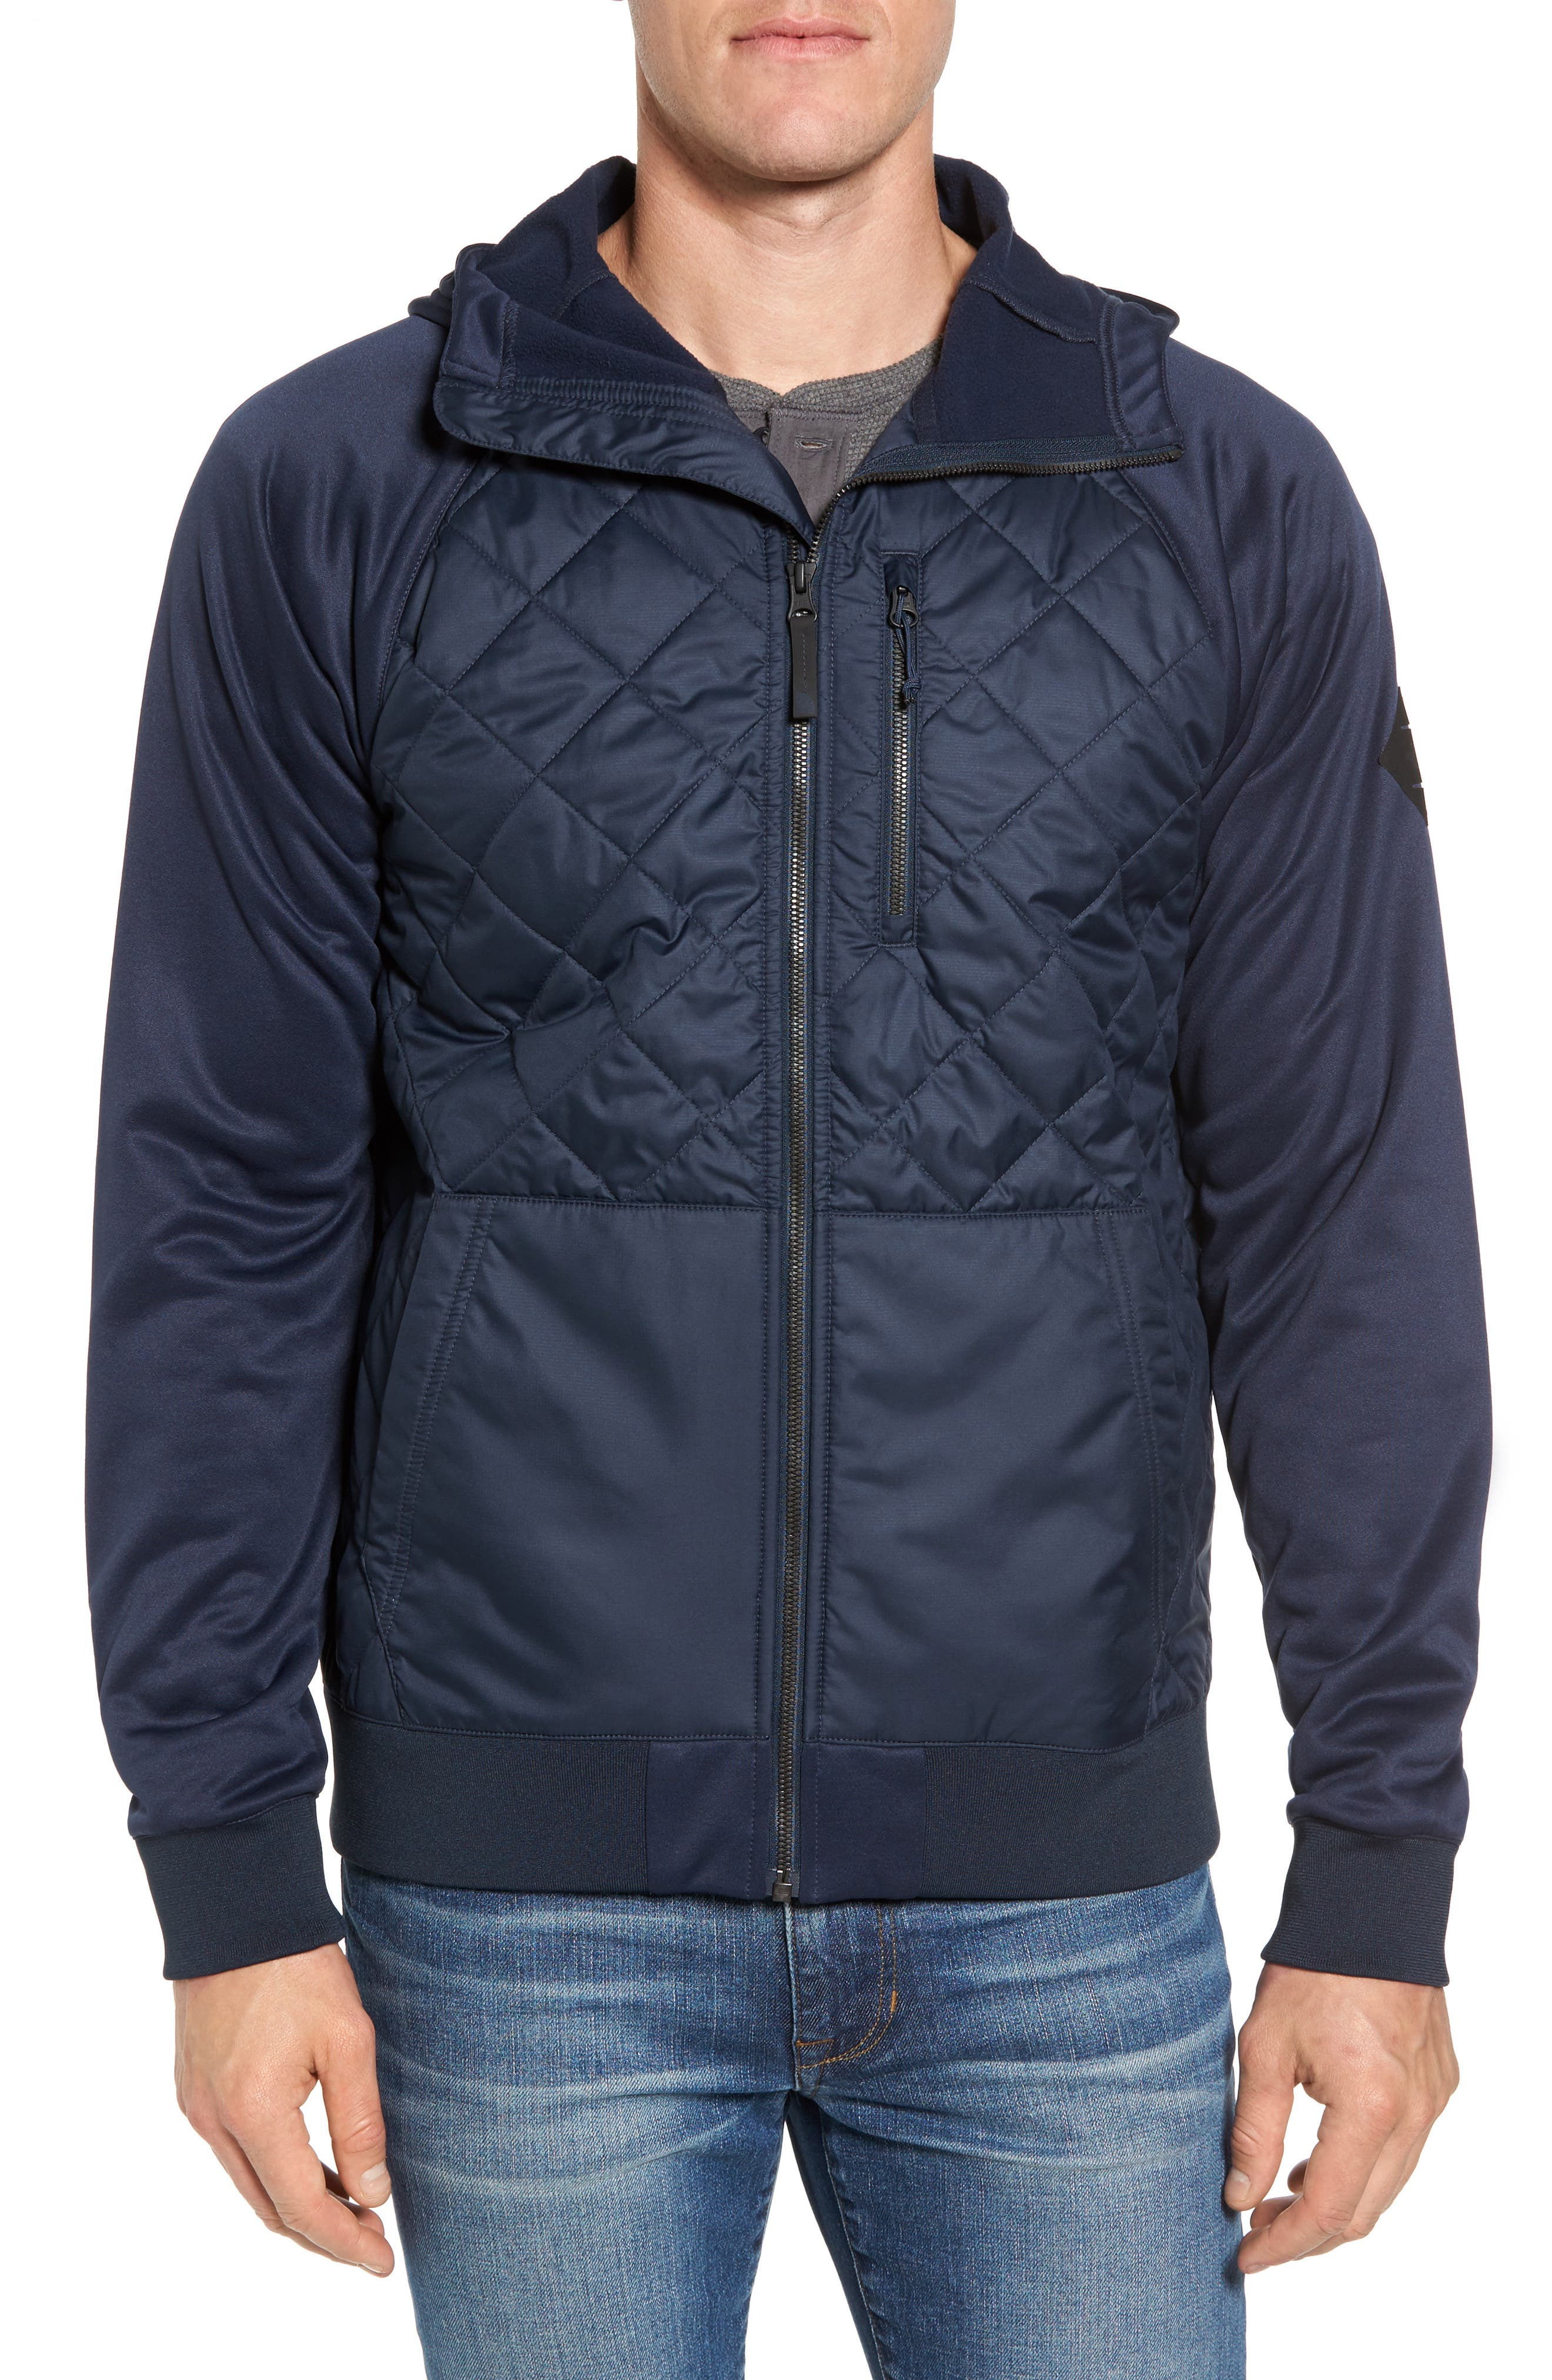 Pilsen Hybrid Jacket,                             Main thumbnail 1, color,